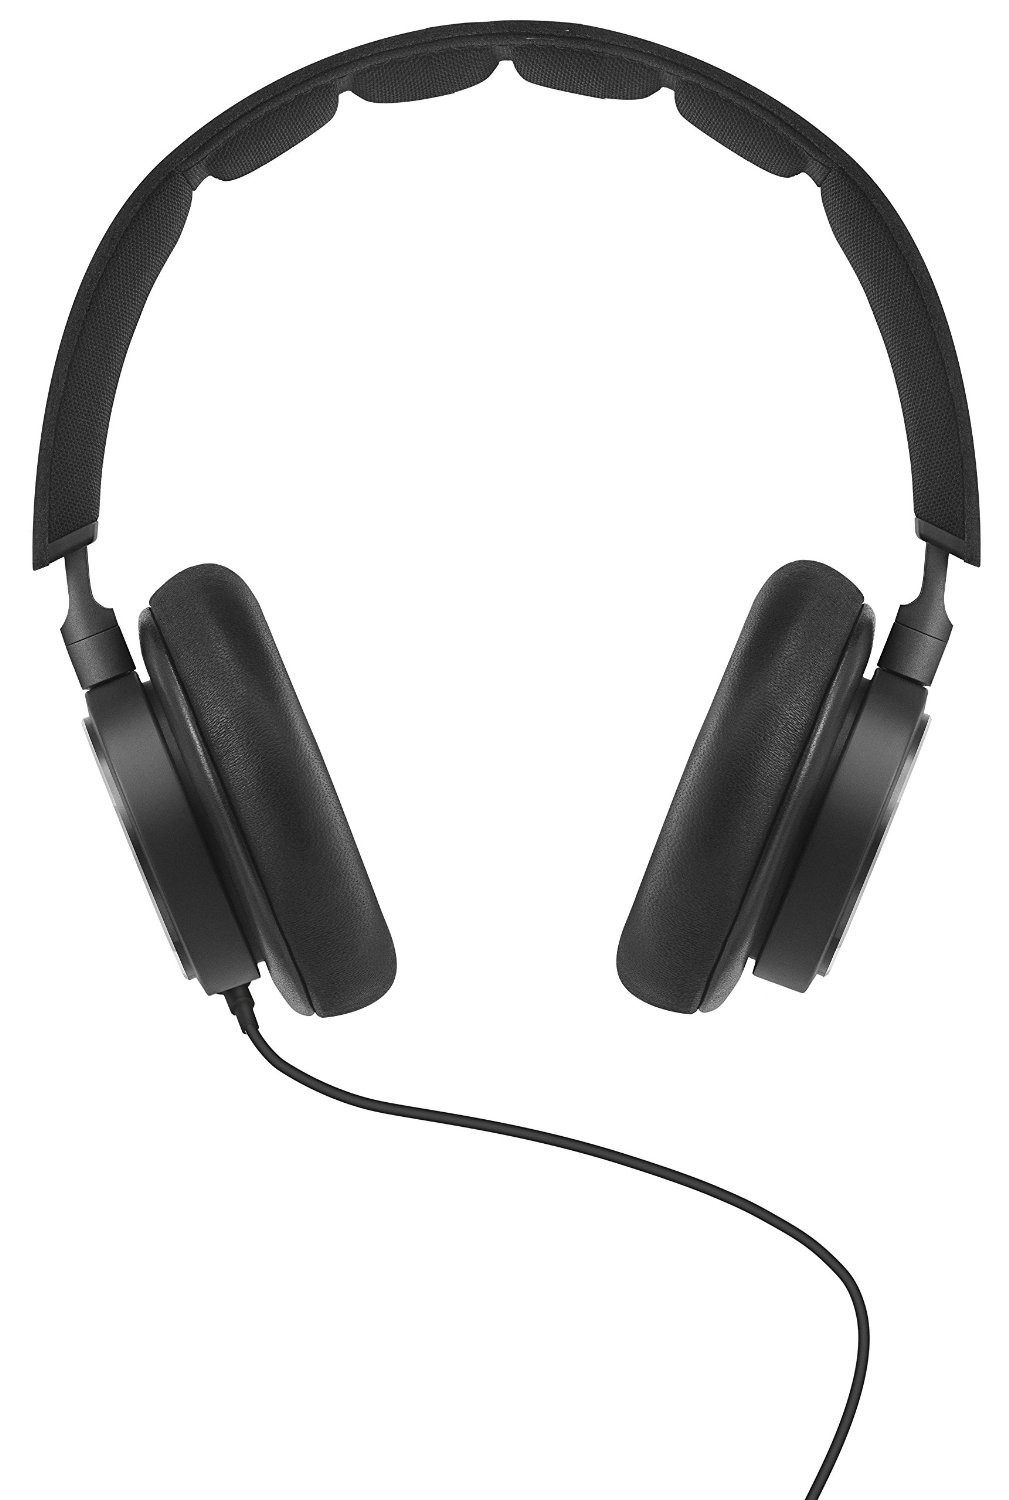 B&O H6 Second Generation headphones